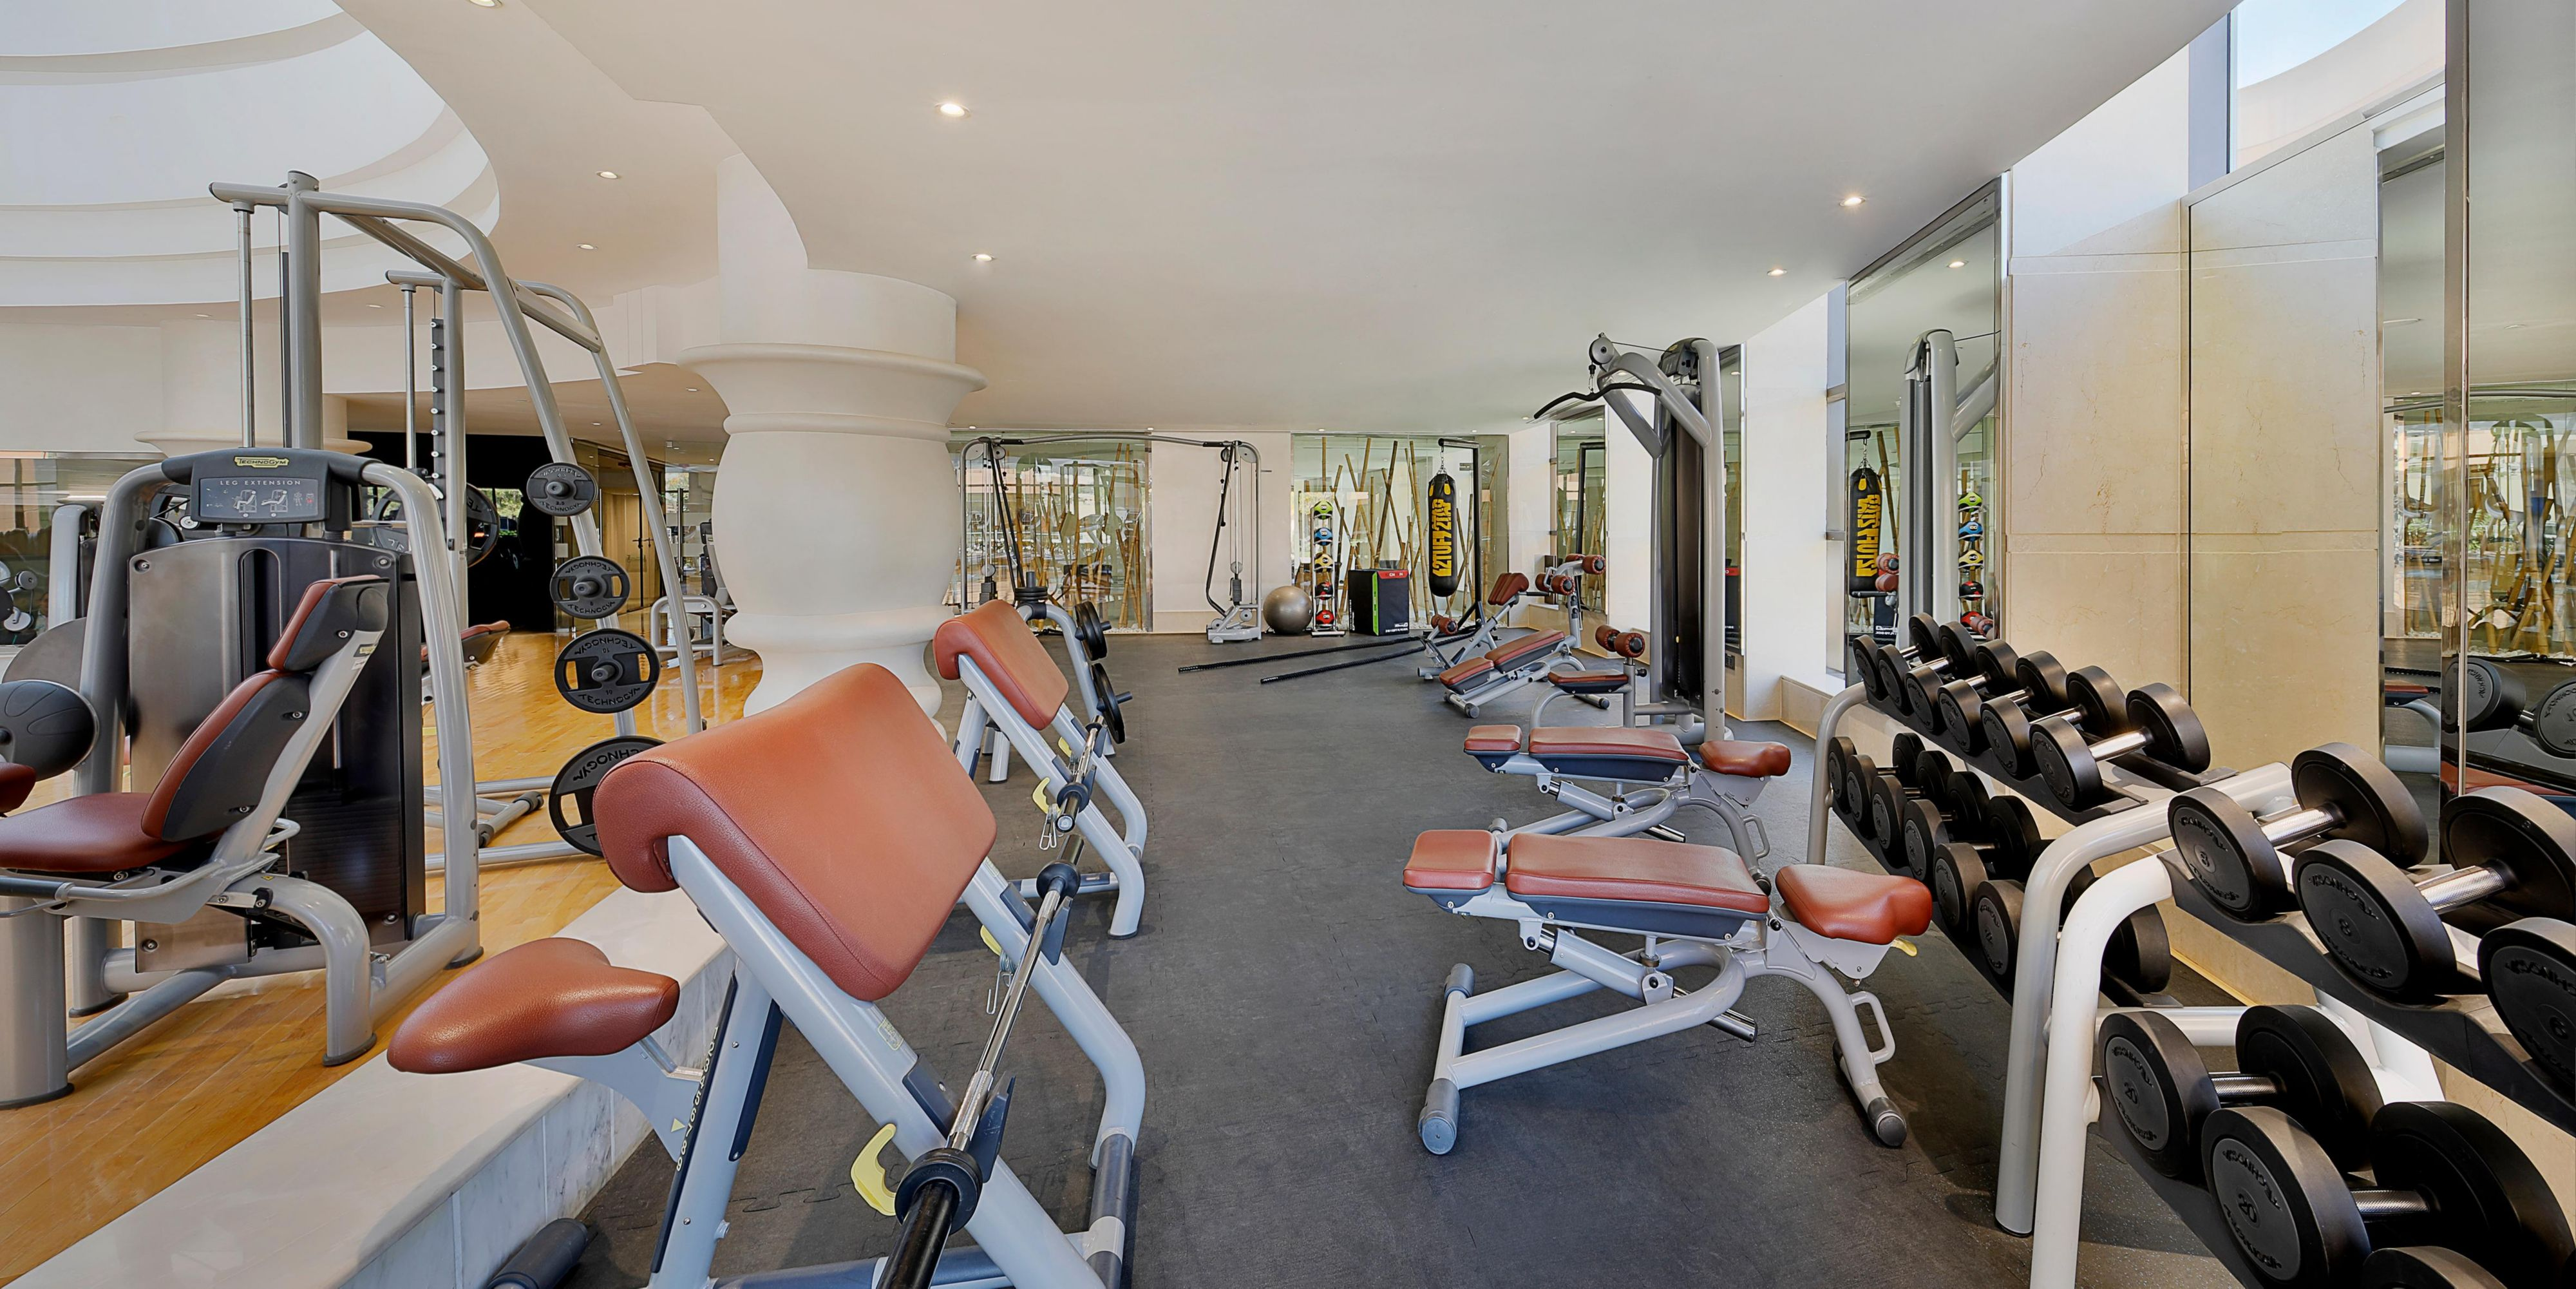 Rio Health Club Free weights to build muscles & healthy lifestyle